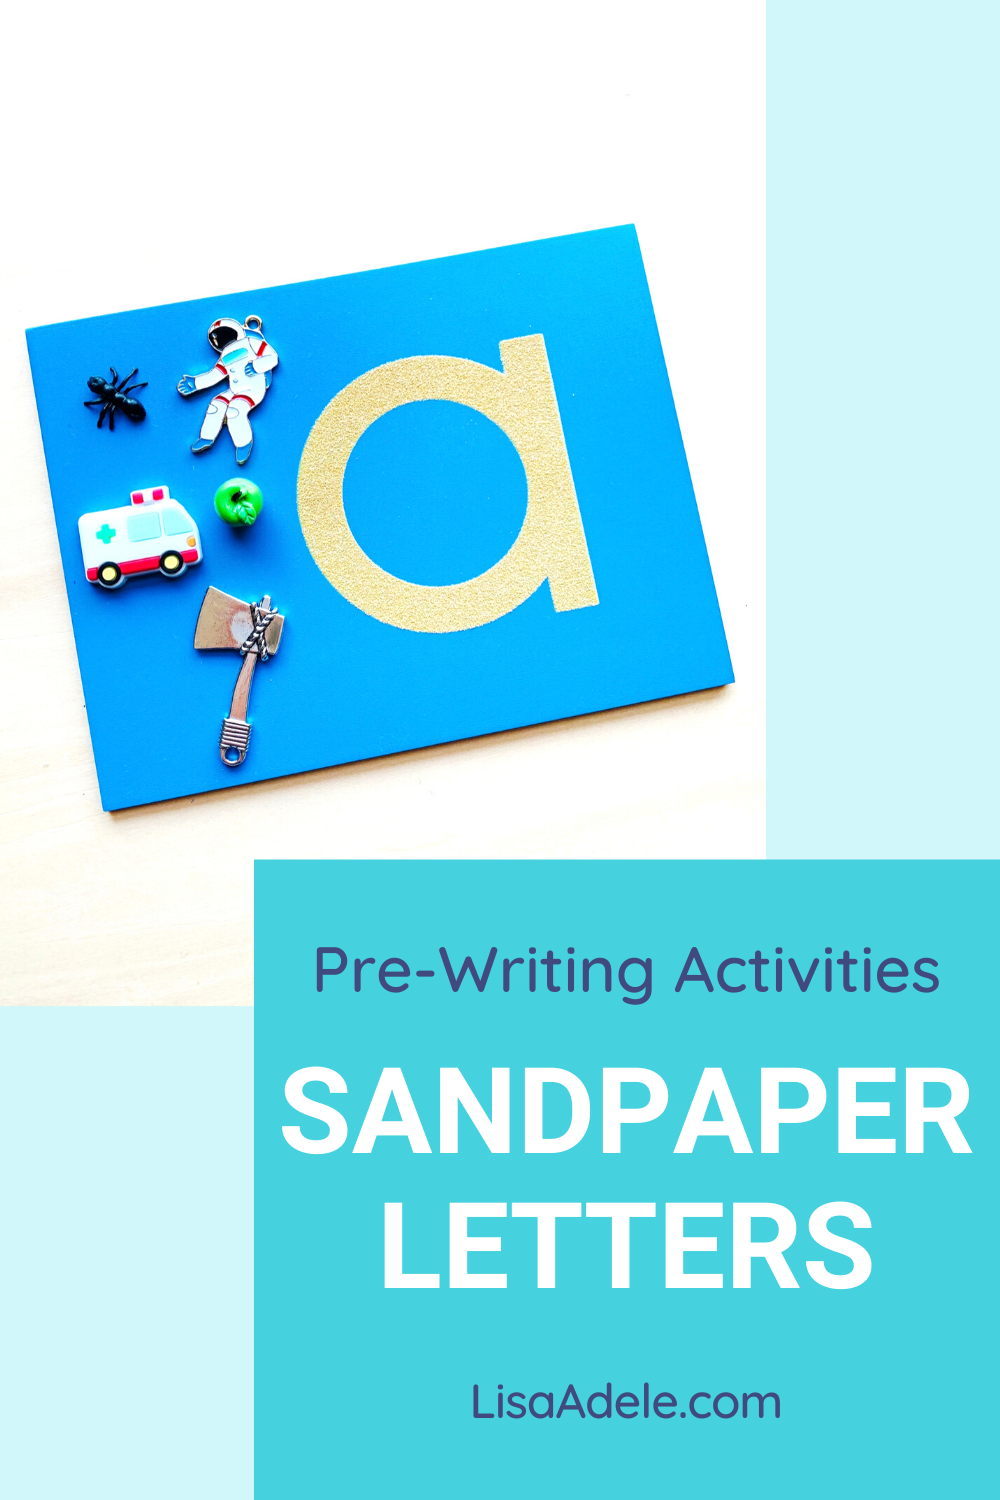 Montessori sandpaper letters with beginning sounds alphabet phonics objects